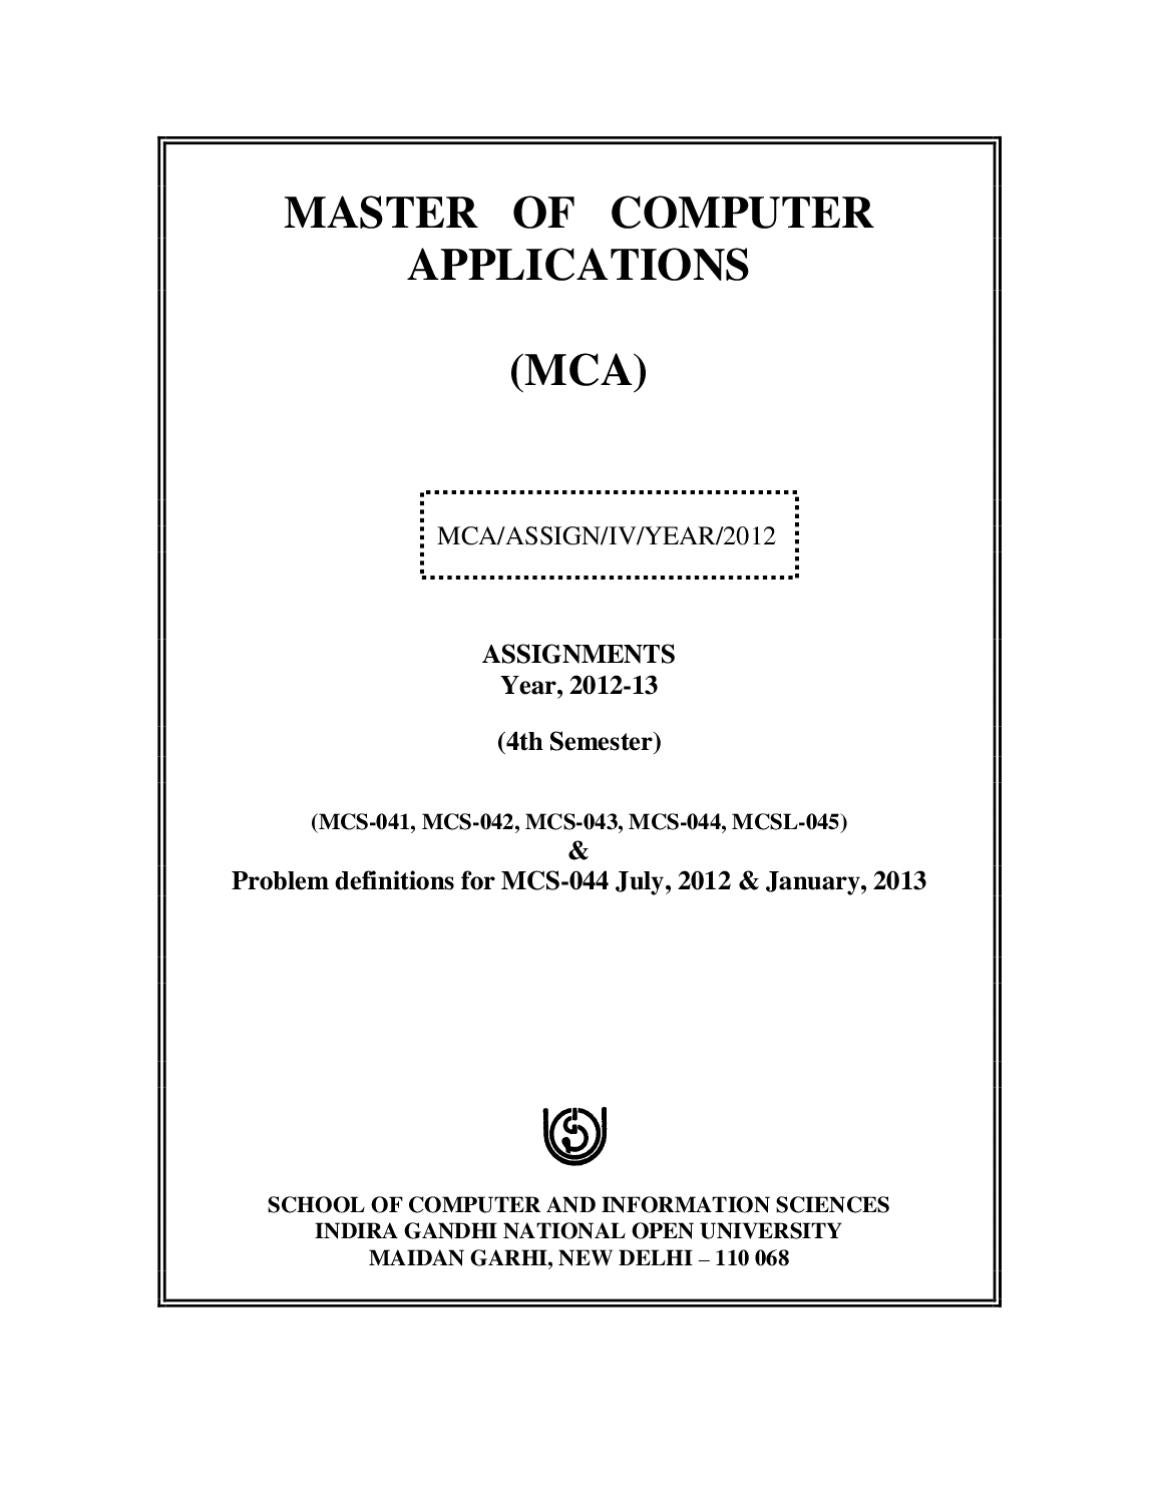 mca assignment iv sem by ignou mca issuu